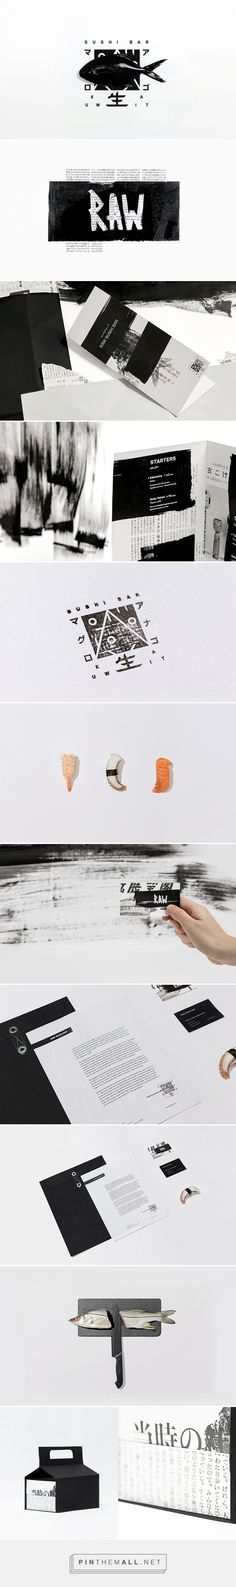 Raw on Behance... - a grouped images picture - Pin Them All